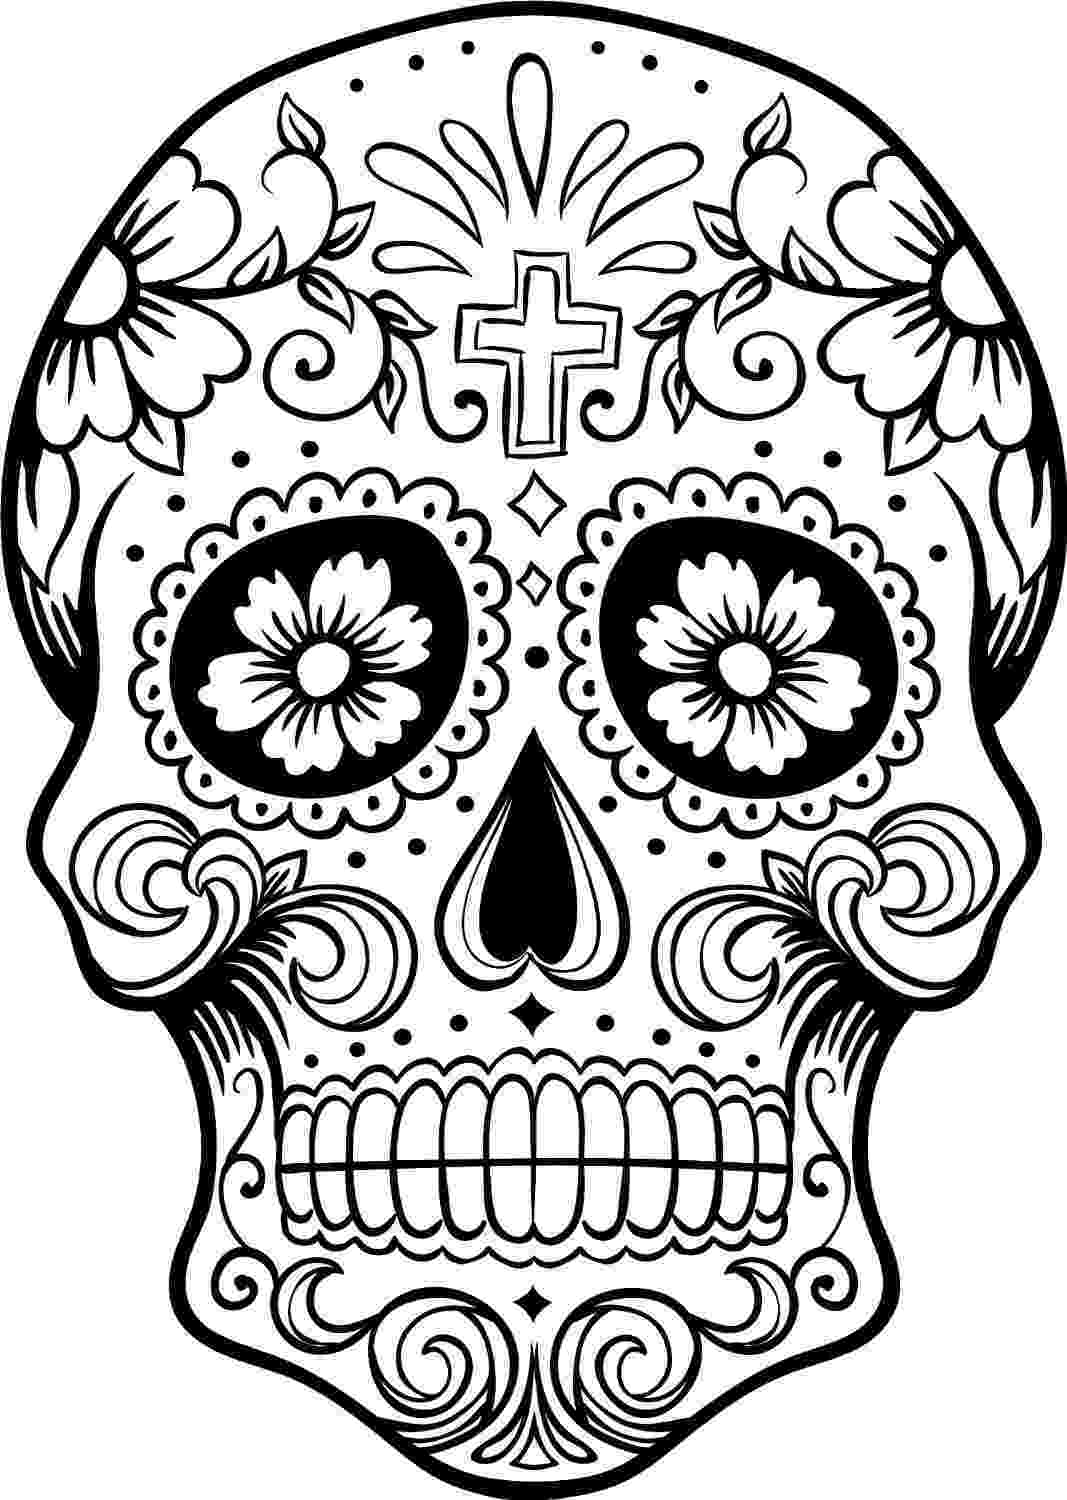 day of the dead printable pictures free printable day of the dead coloring pages best pictures day dead printable the of